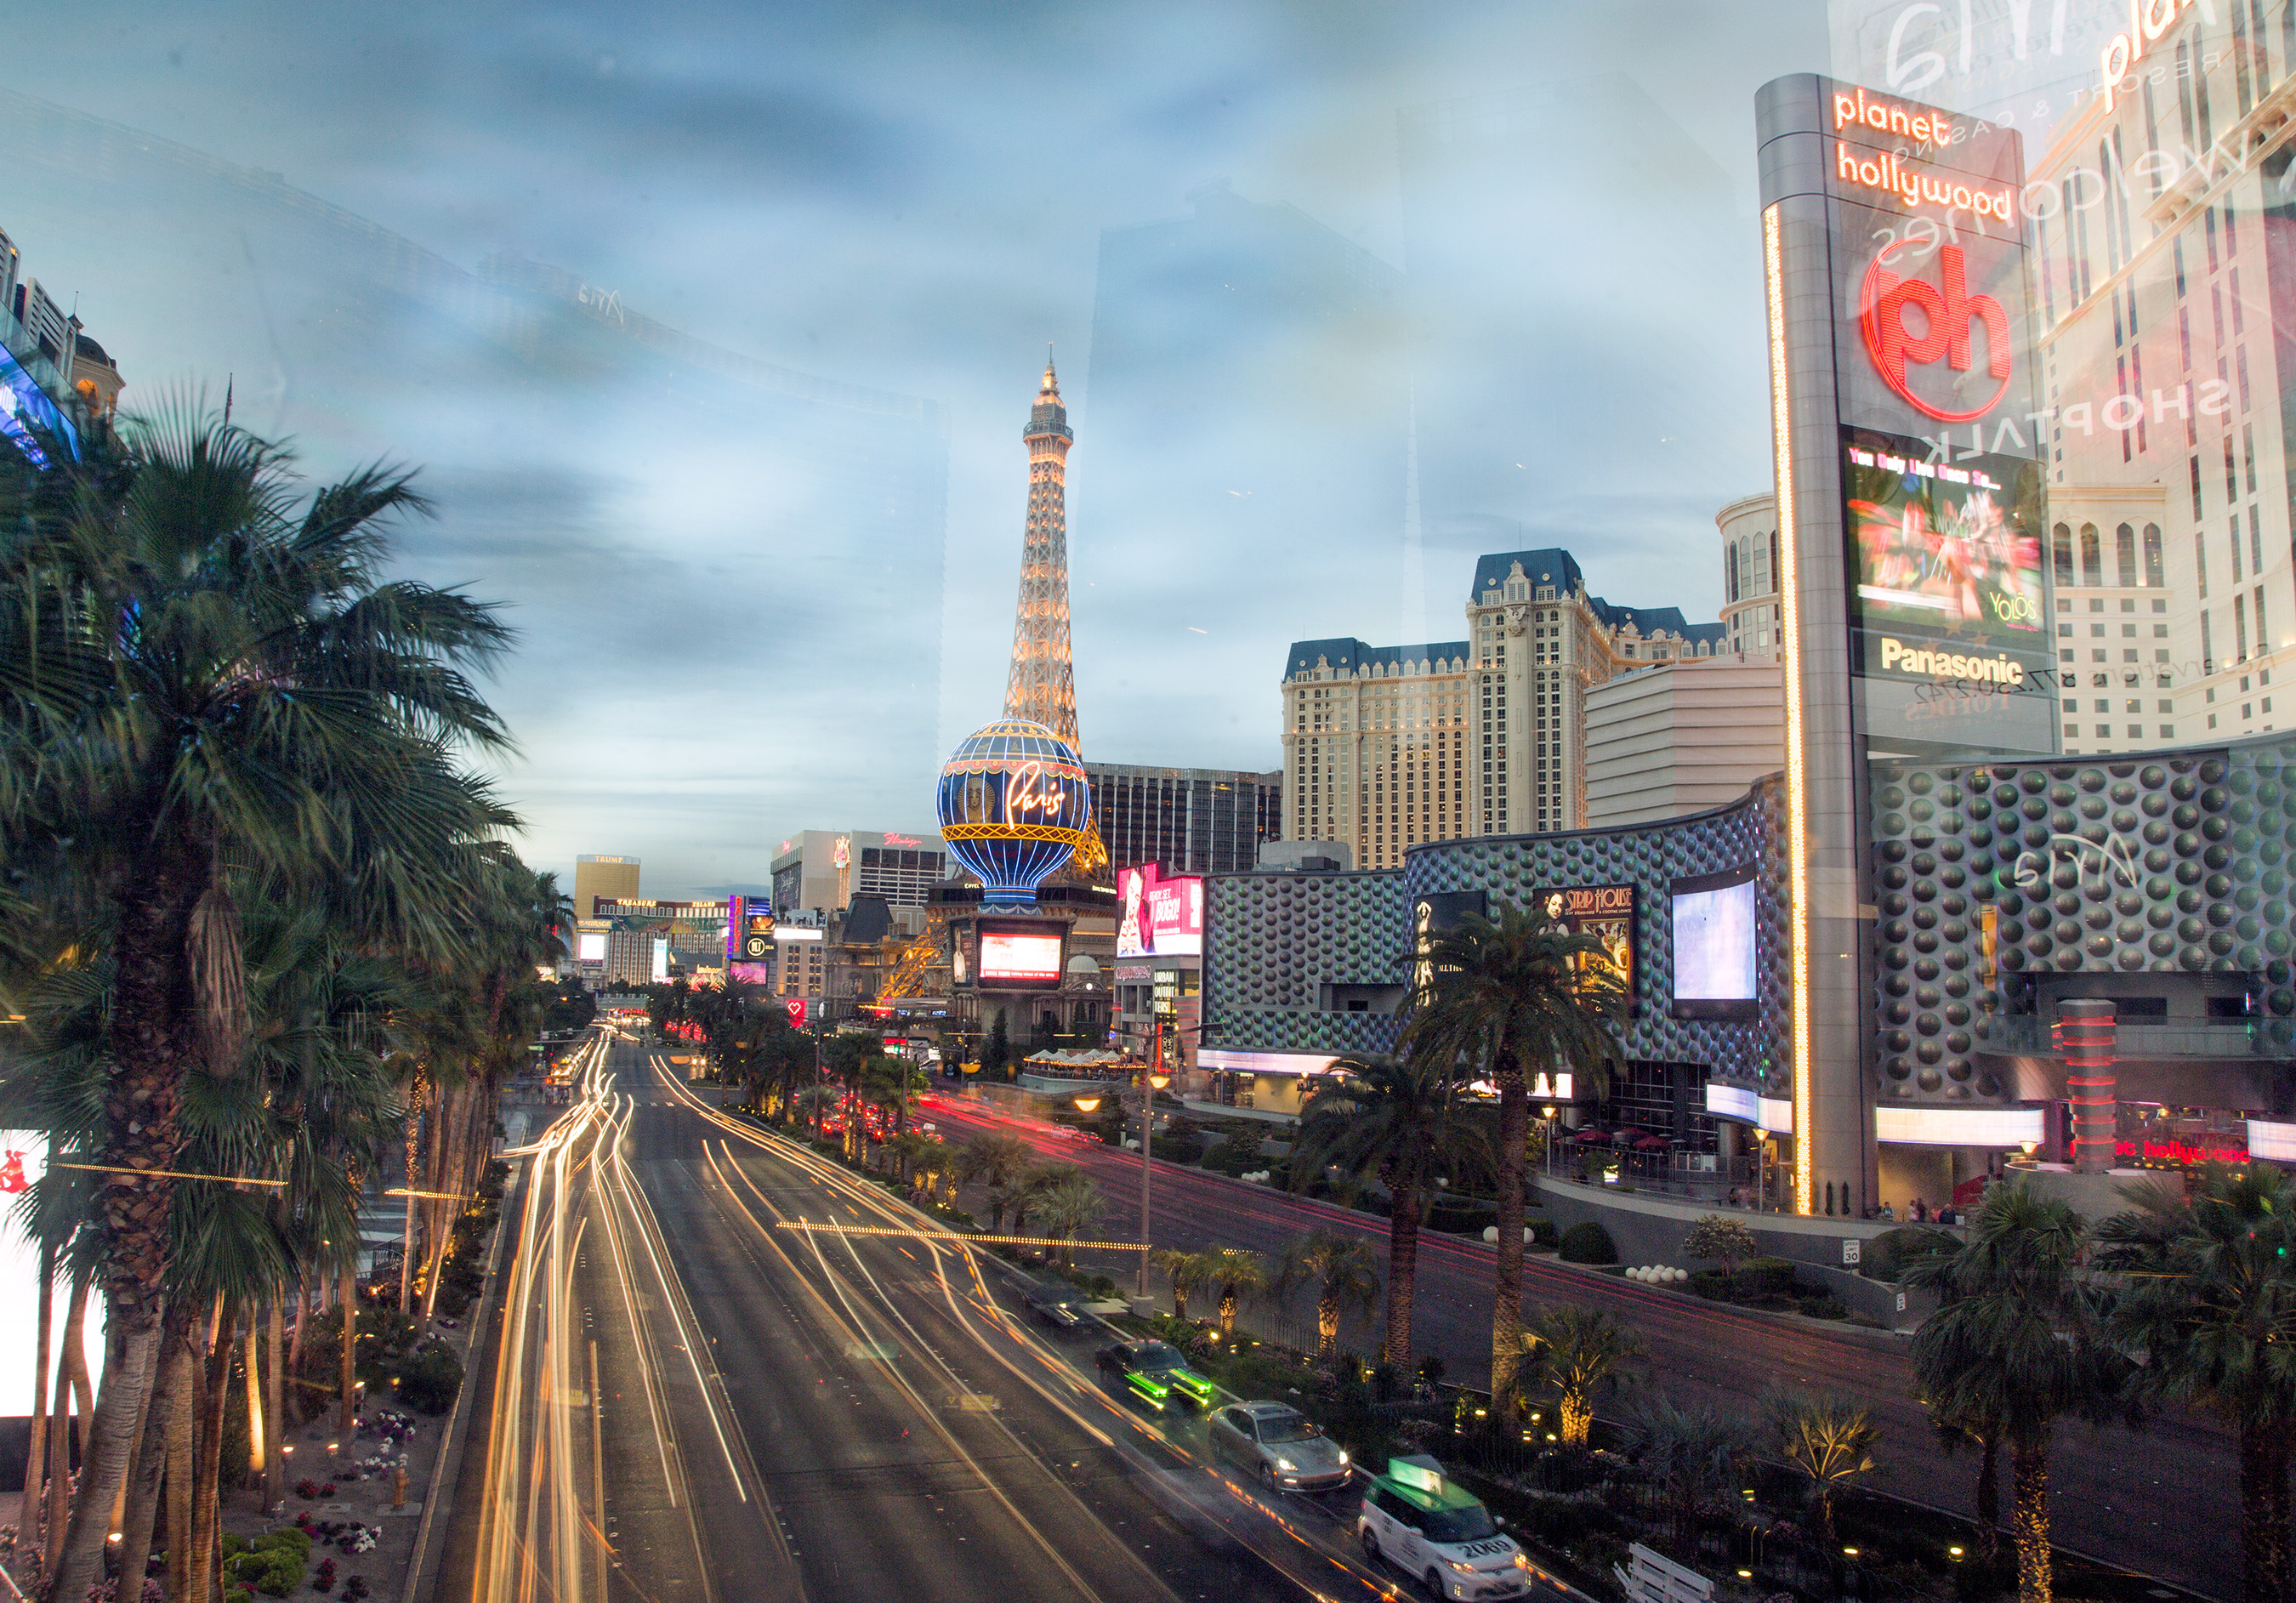 A view of Las Vegas Boulevard in the evening